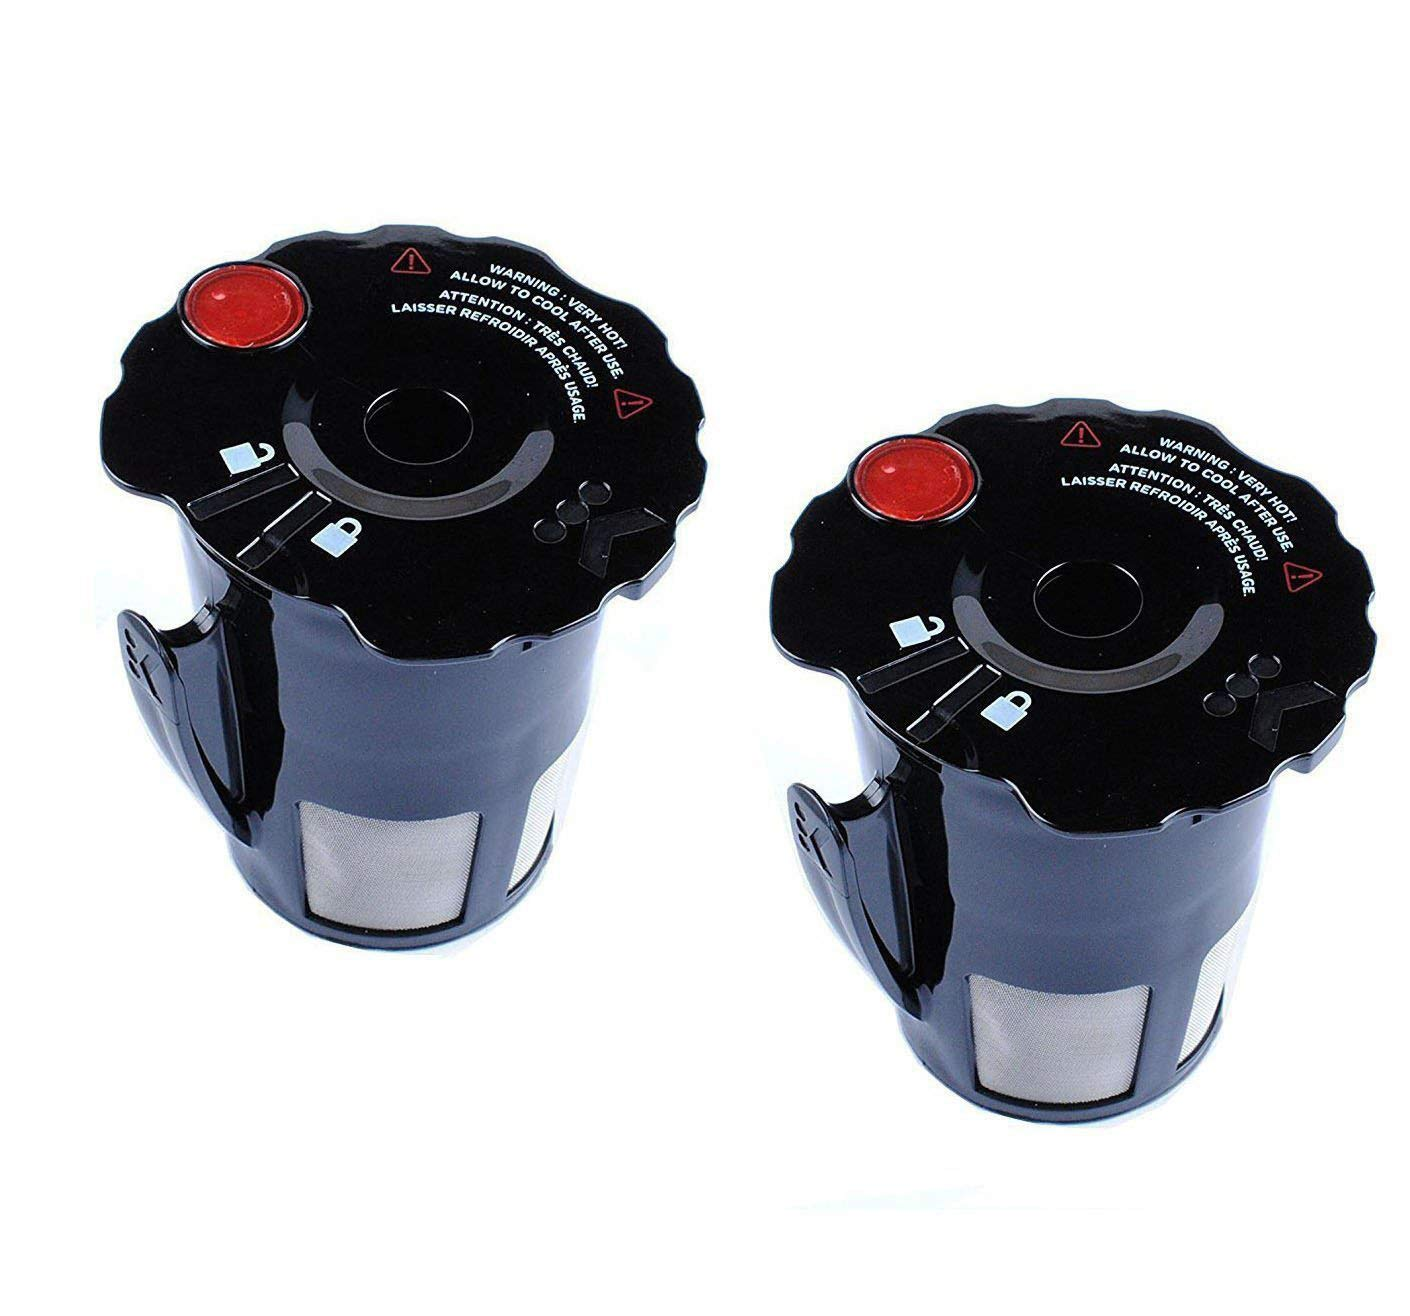 Podoy Reusable Coffee Filter for Keurig K-Cup My 119367 2.0 Updated Model Black Small Coffee Filter (Pack of 2)